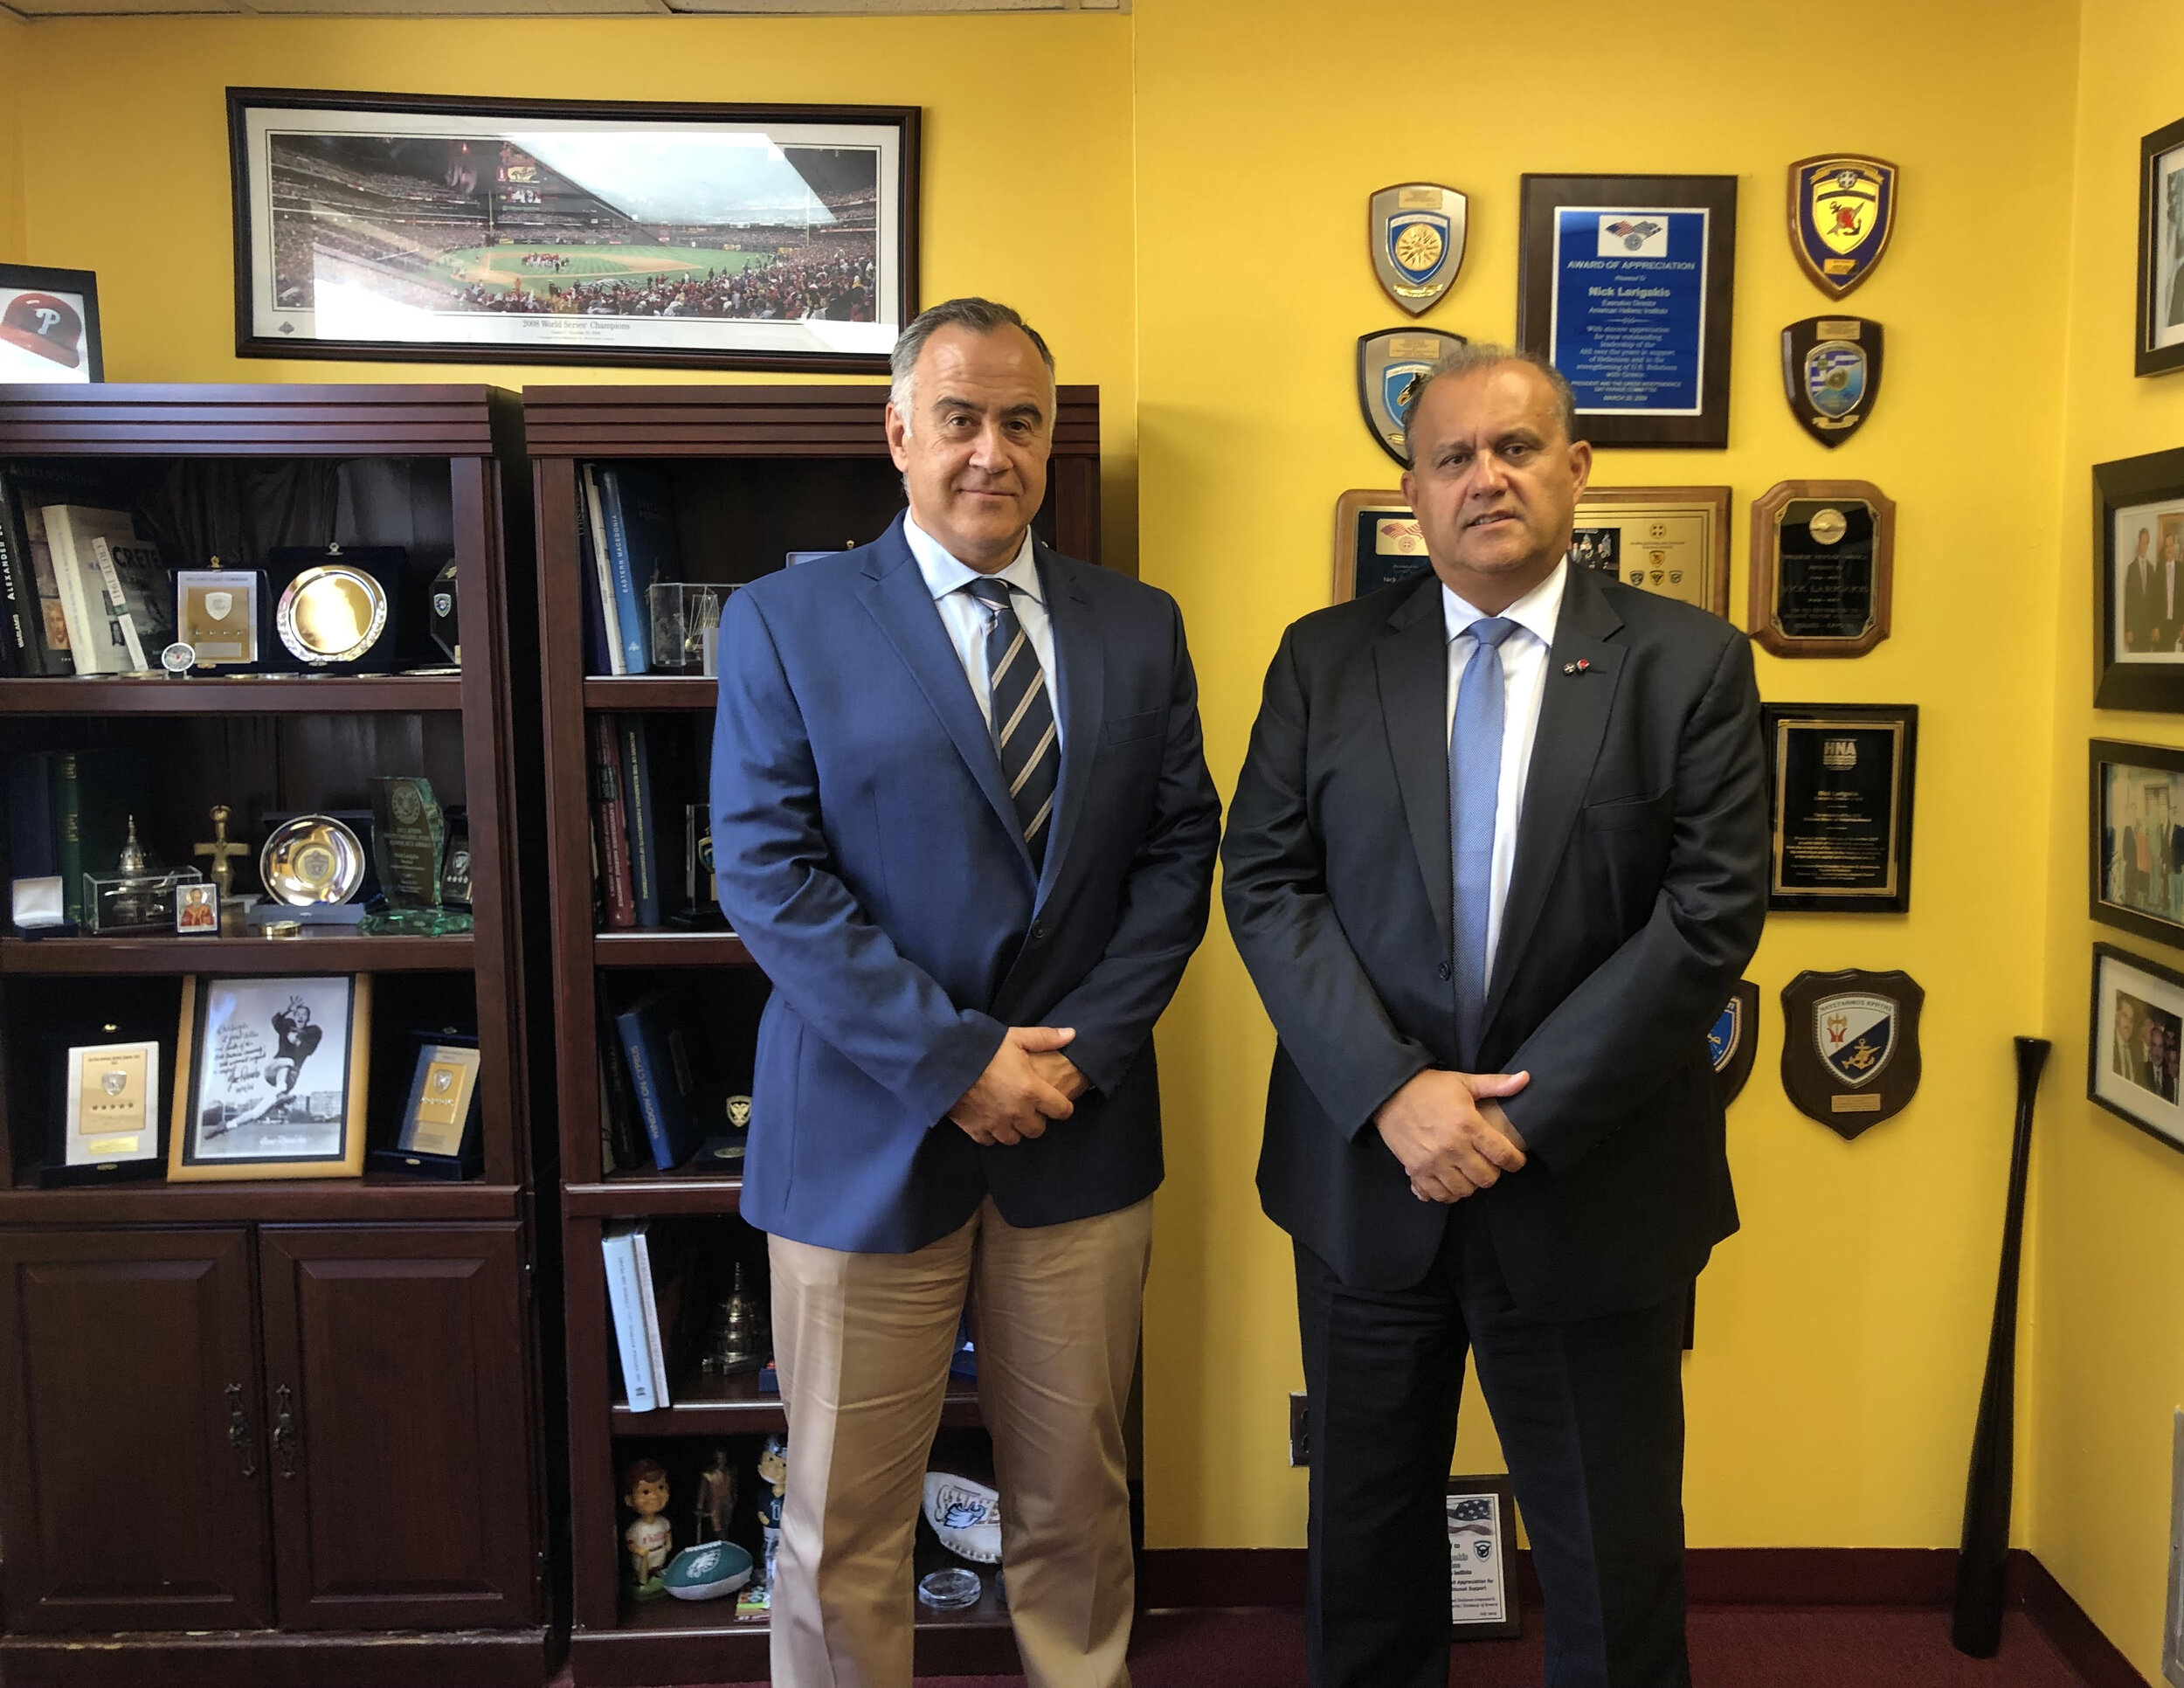 (L-R) Col. Dimitris Bistis, the new Air attaché at the Embassy of Greece in Washington, D.C., and AHI President Larigakis